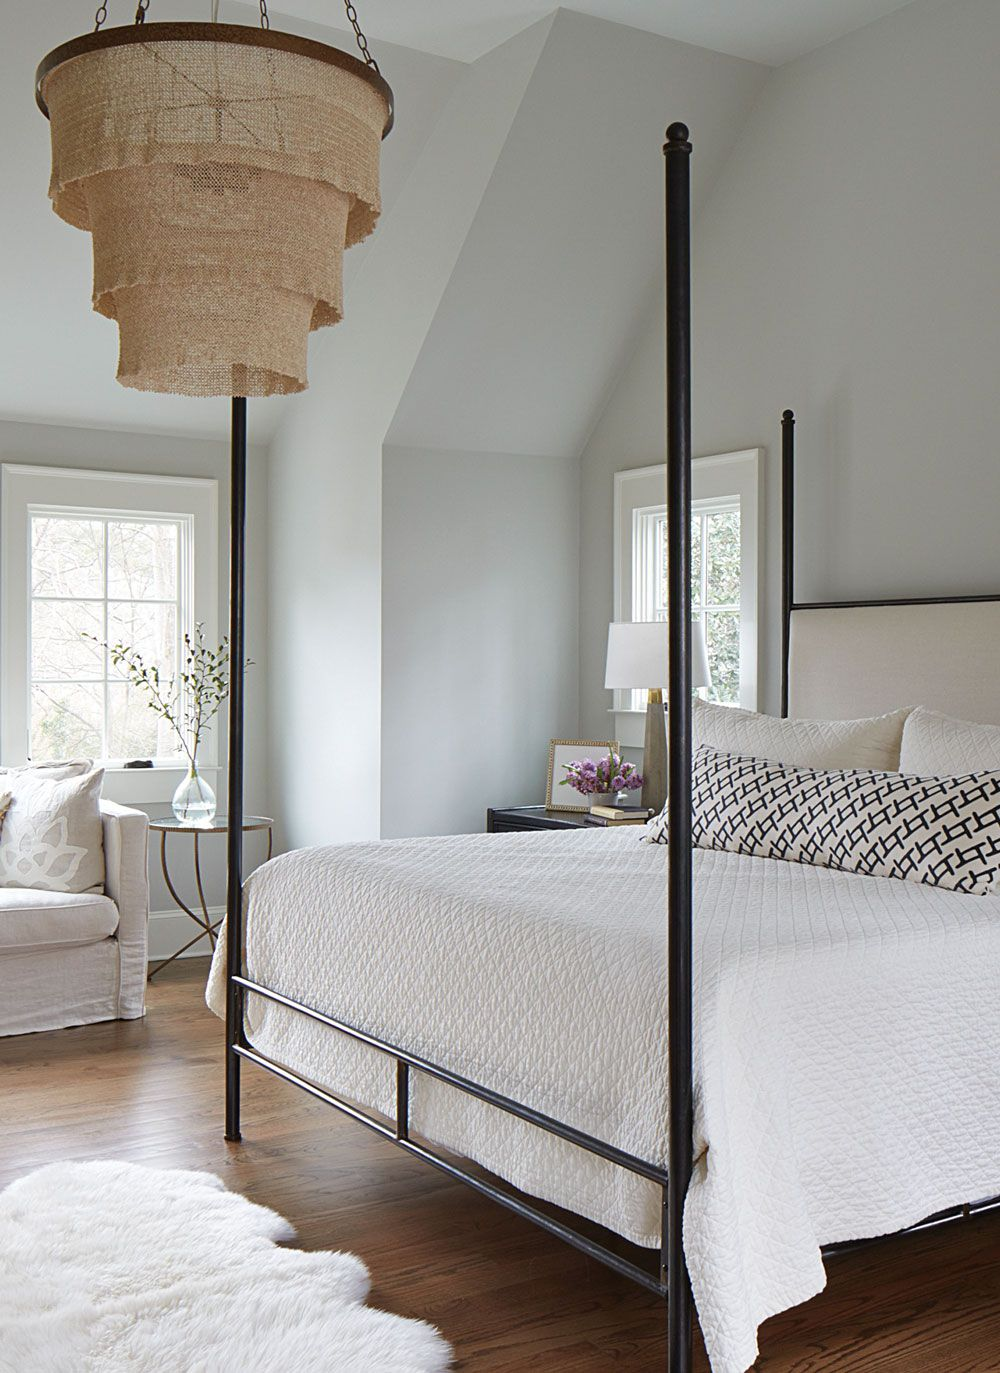 Nikie Barfield House  Bed  Pinterest  Bedrooms House And Bed Prepossessing Simple Master Bedroom Design Review